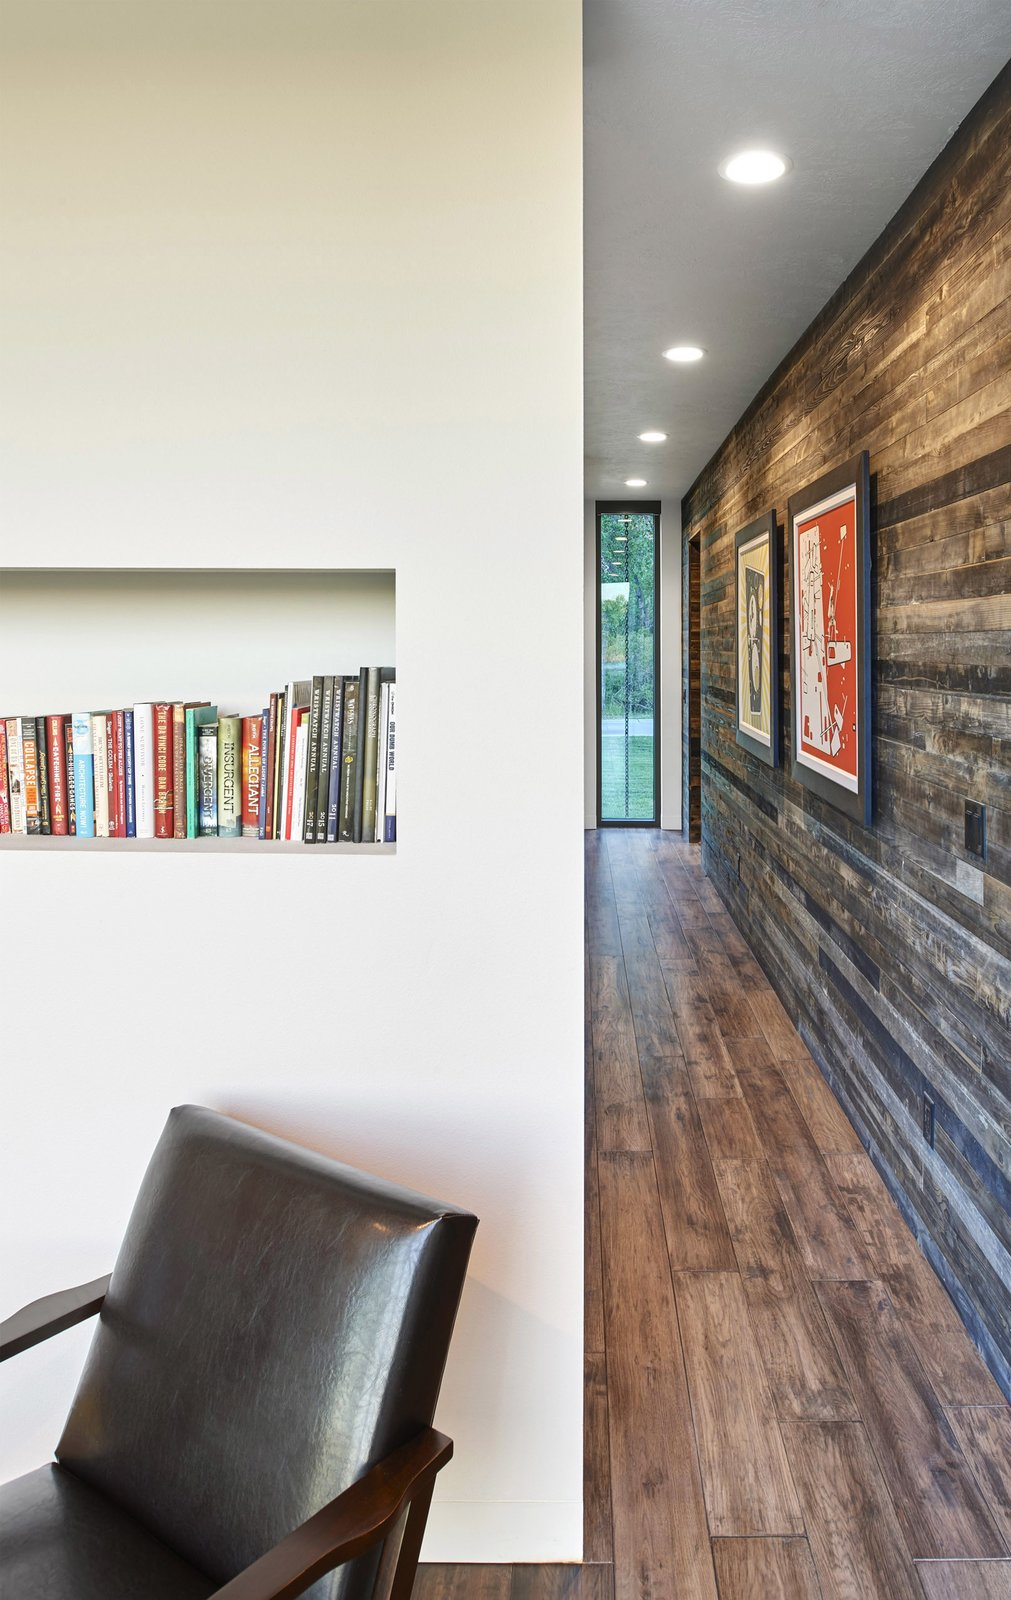 Bookcase, Chair, Recessed Lighting, Dark Hardwood Floor, and Living Room View to the north looking at the reading room on the left and the formerly-exterior cedar sheathed wall at the right. (2017)  530 house